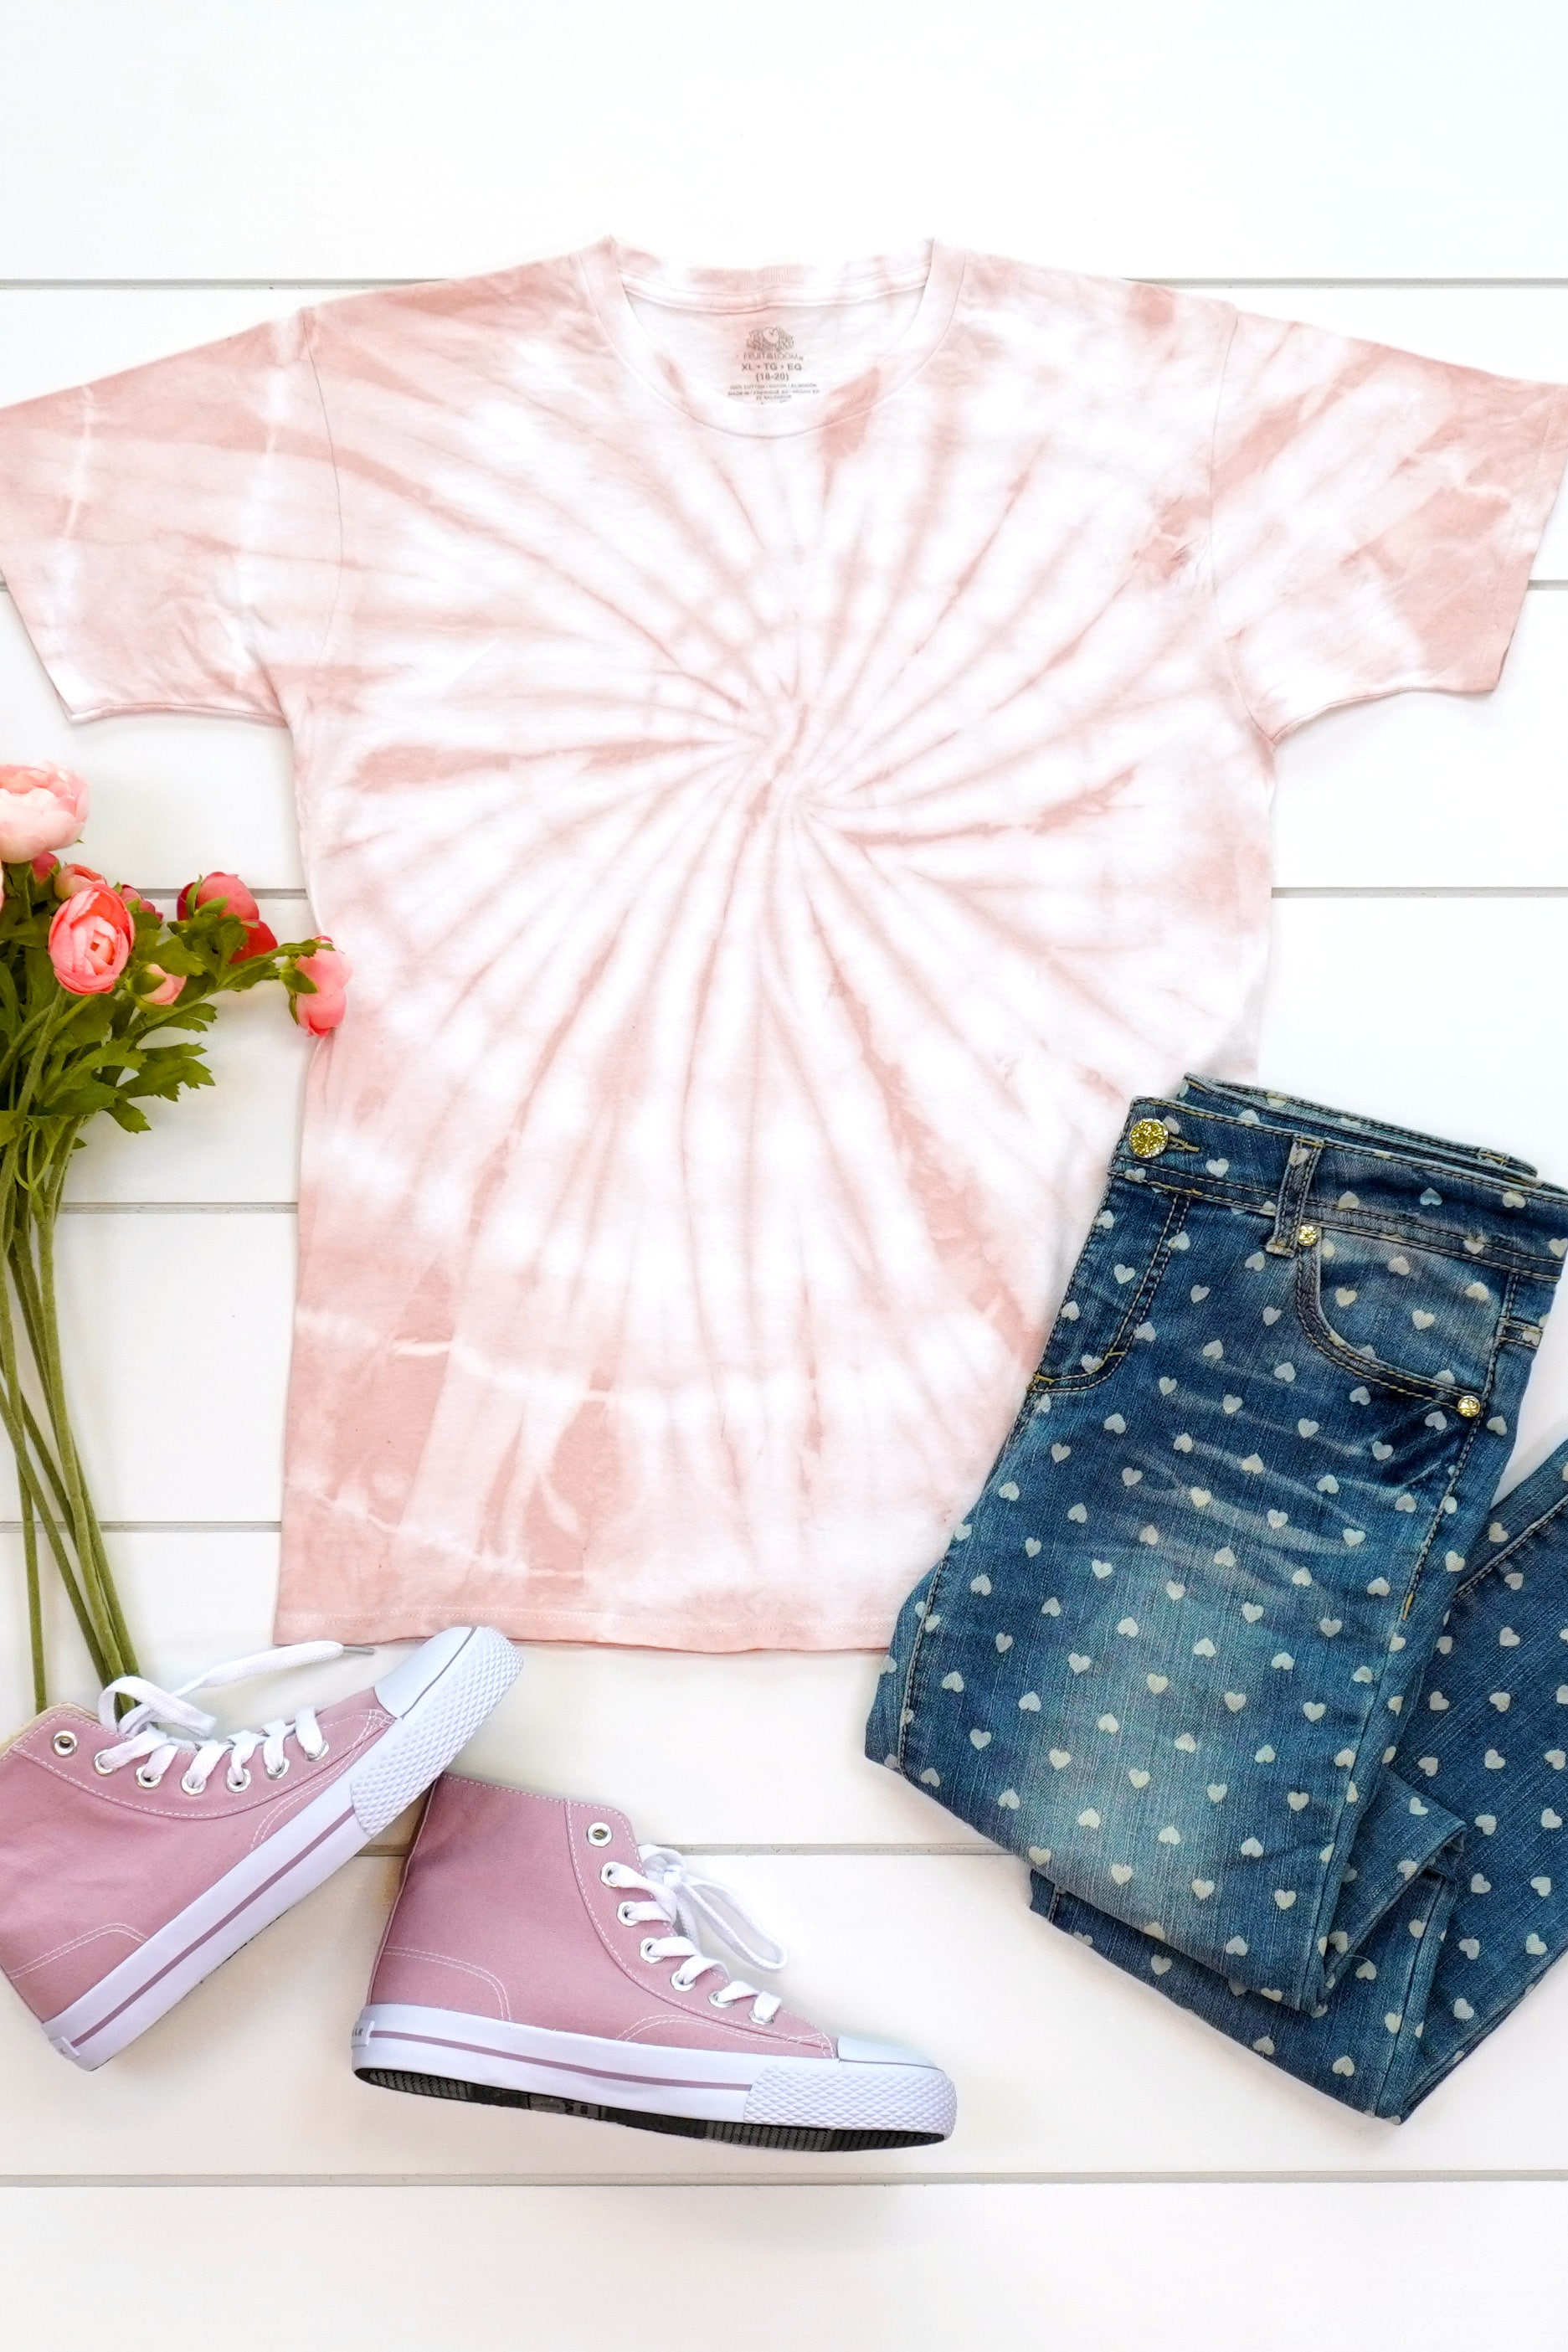 Blush pink spiral tie-dyed shirt made with avocado dye staged with an outfit and flowers on a white background